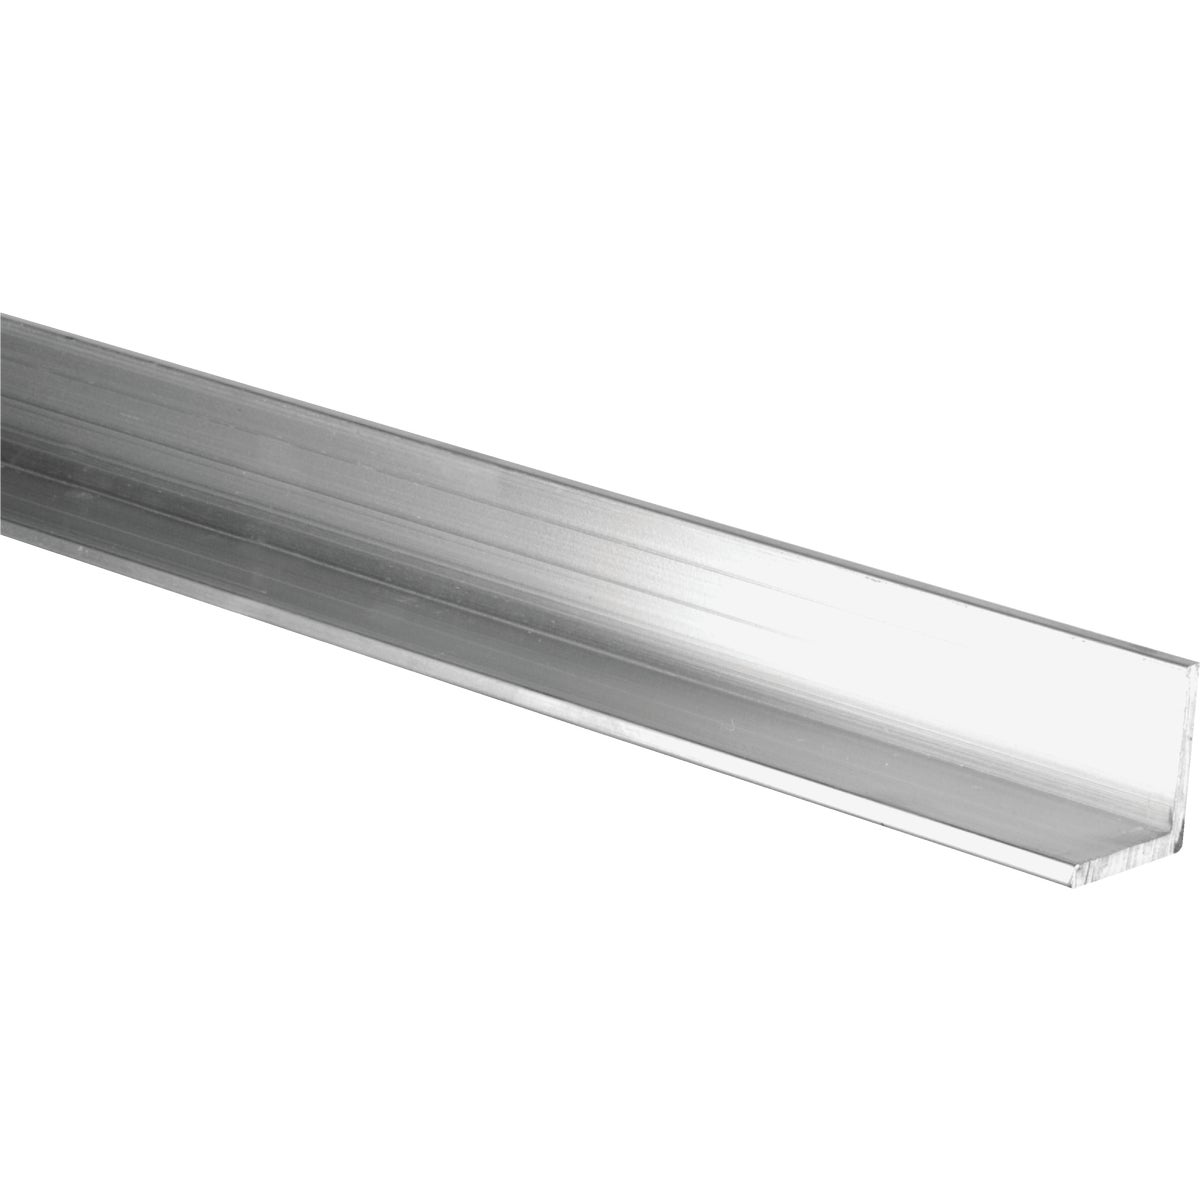 1/8X1-1/2X6' ALUM ANGLE - N247452 by National Mfg Co